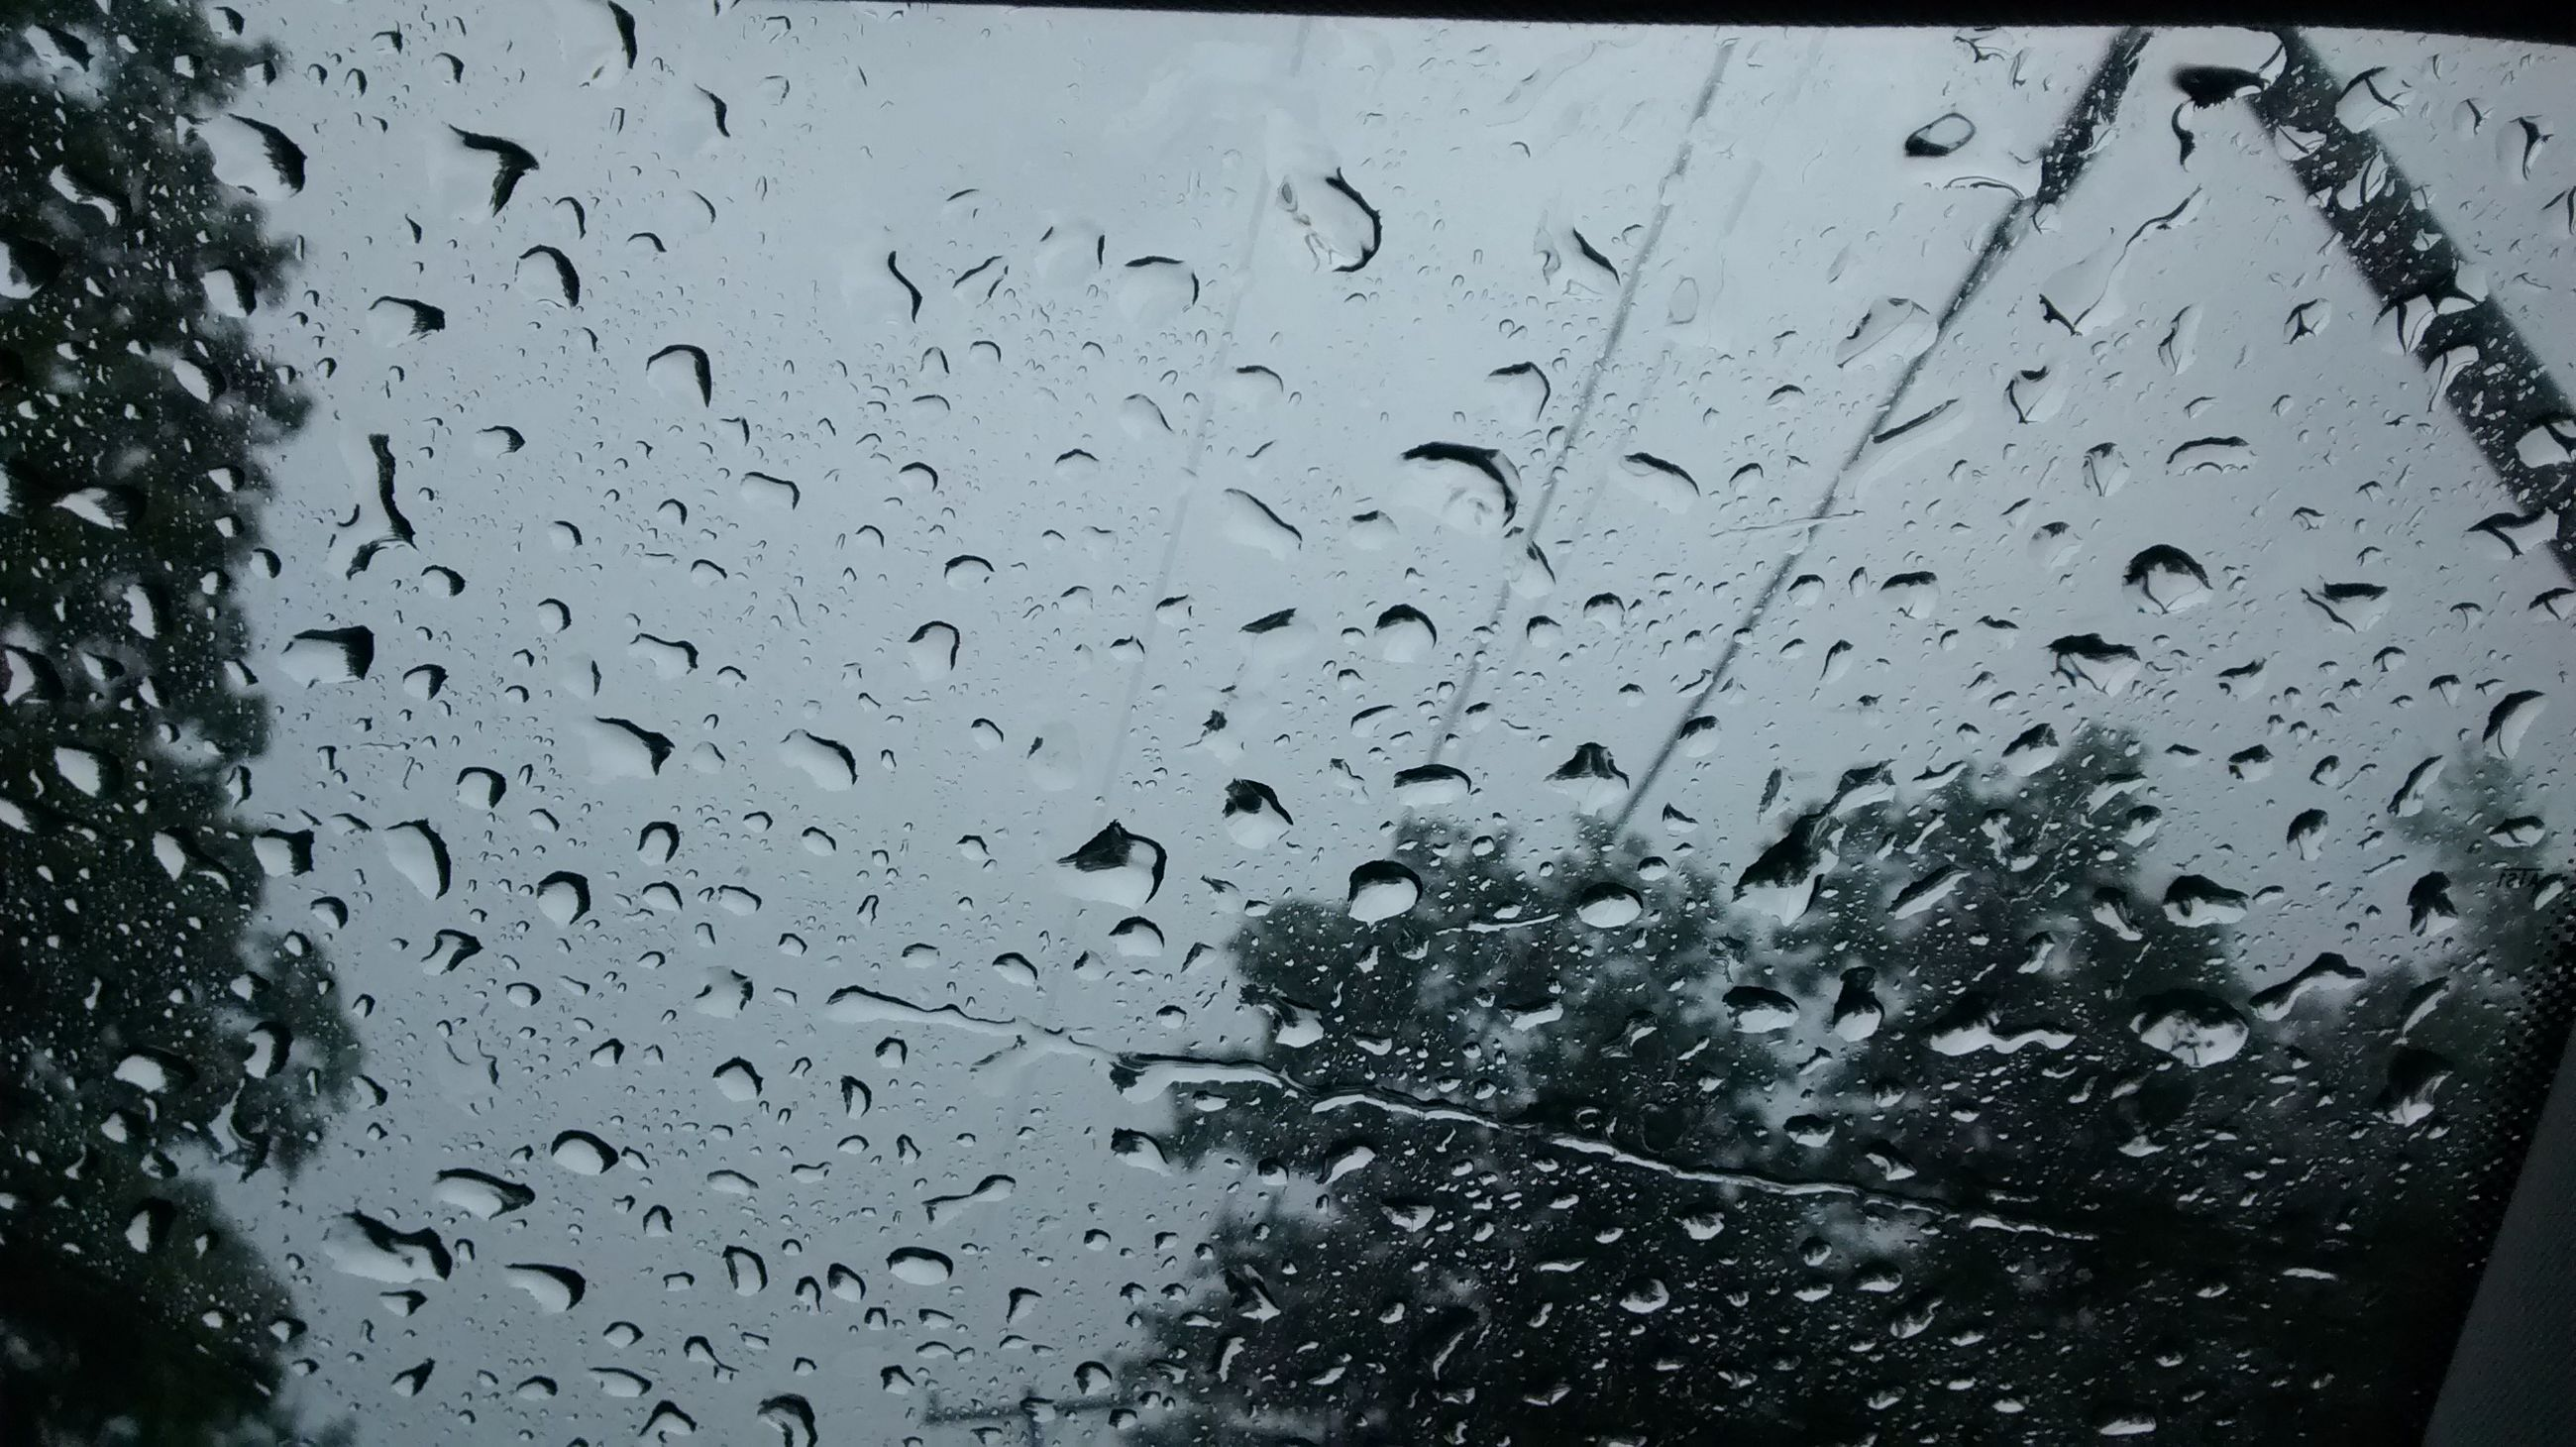 drop, wet, window, indoors, rain, transparent, water, glass - material, raindrop, weather, focus on foreground, season, glass, close-up, sky, full frame, backgrounds, monsoon, water drop, looking through window